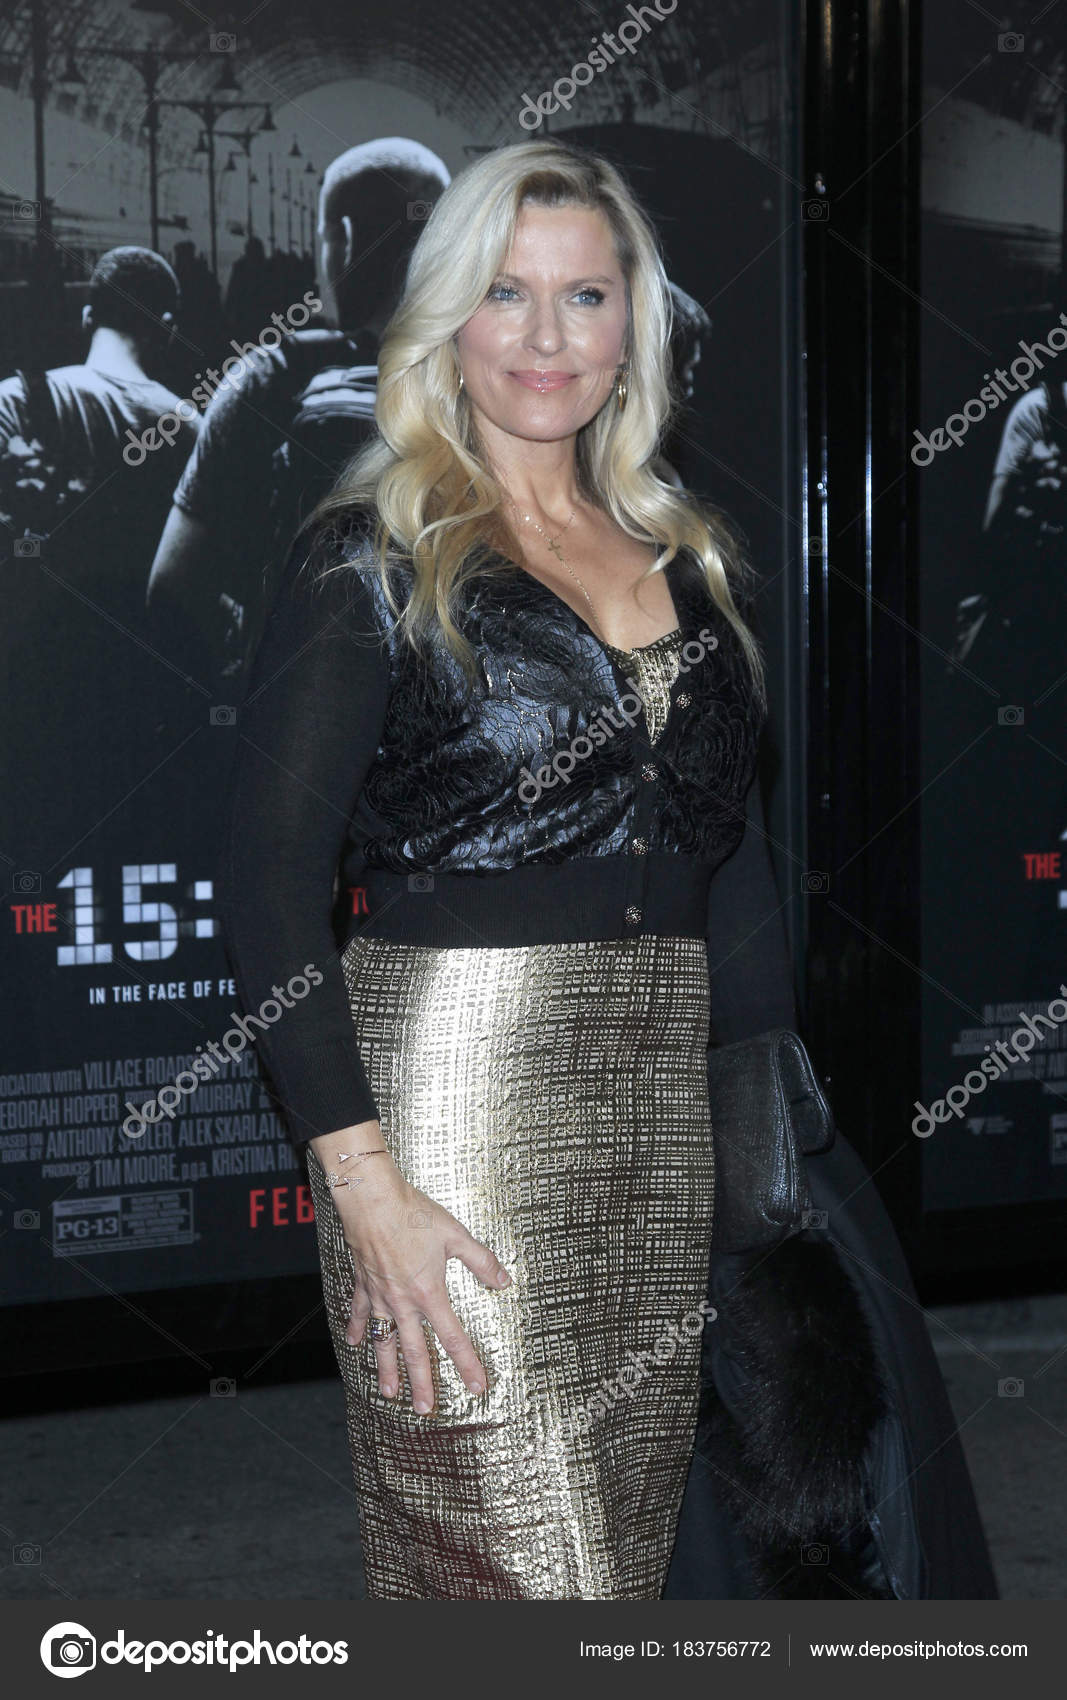 brenda epperson y&rbrenda epperson net worth, brenda epperson age, brenda epperson instagram, brenda epperson pott county realty, brenda epperson imdb, brenda epperson images, brenda epperson facebook, brenda epperson as ashley abbott, brenda epperson young and the restless, brenda epperson obituary, brenda epperson eileen davidson, brenda epperson y&r, brenda epperson fire, brenda epperson wiki, brenda epperson house, brenda epperson psalm 91, brenda epperson height